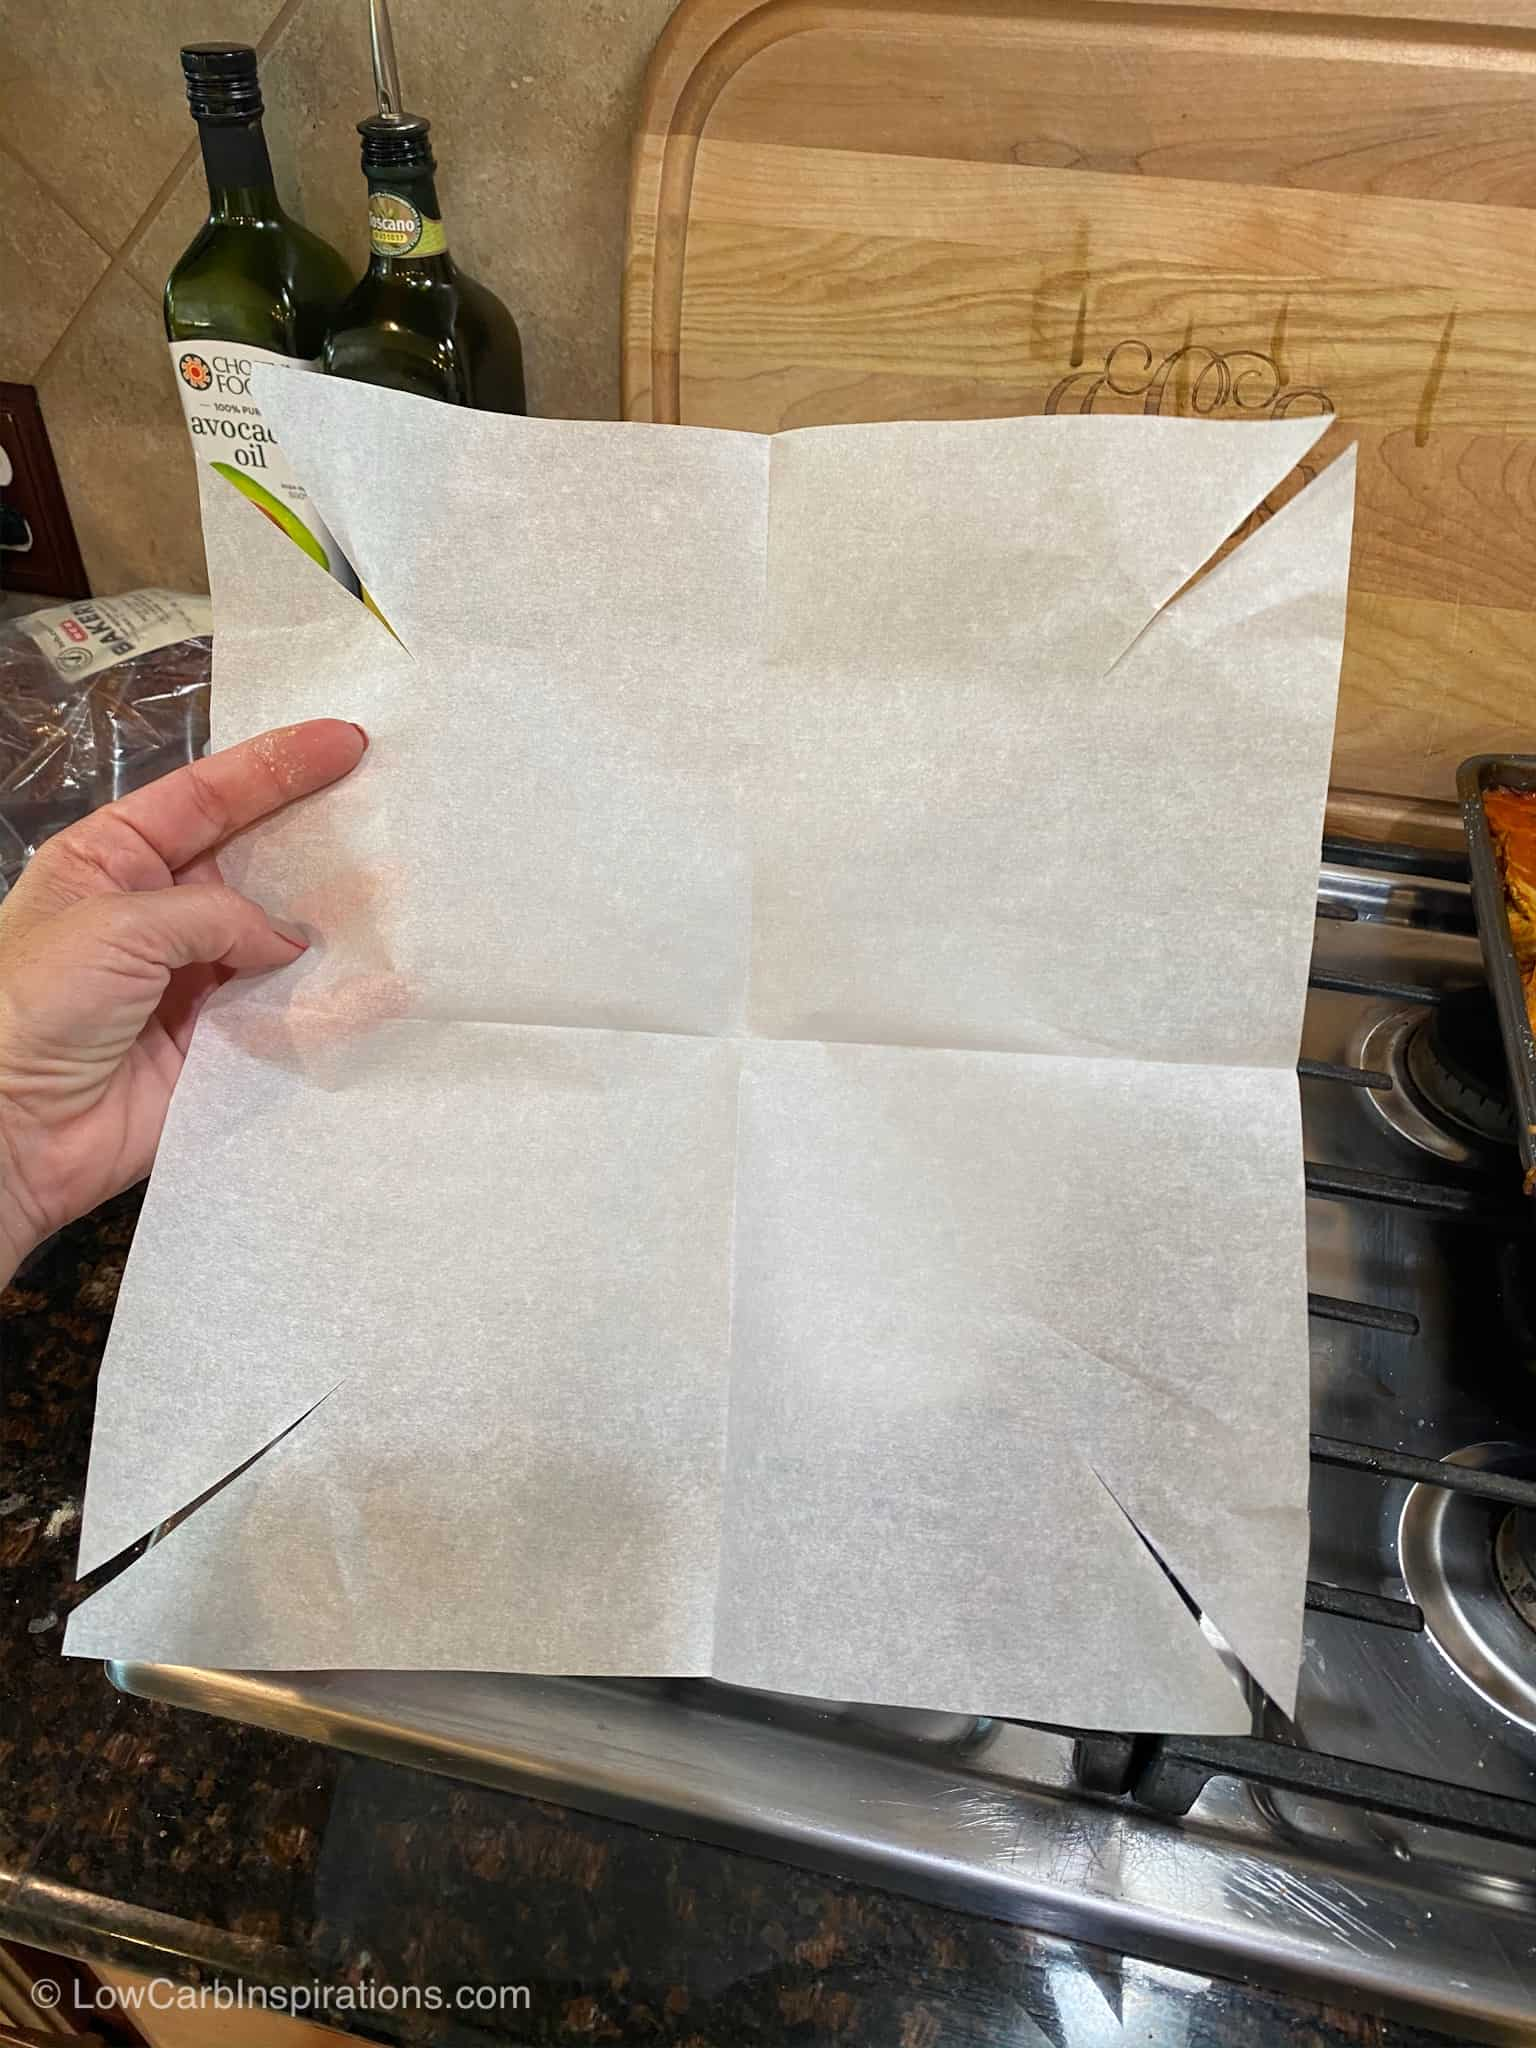 Photo shows the cut marks in the parchment paper